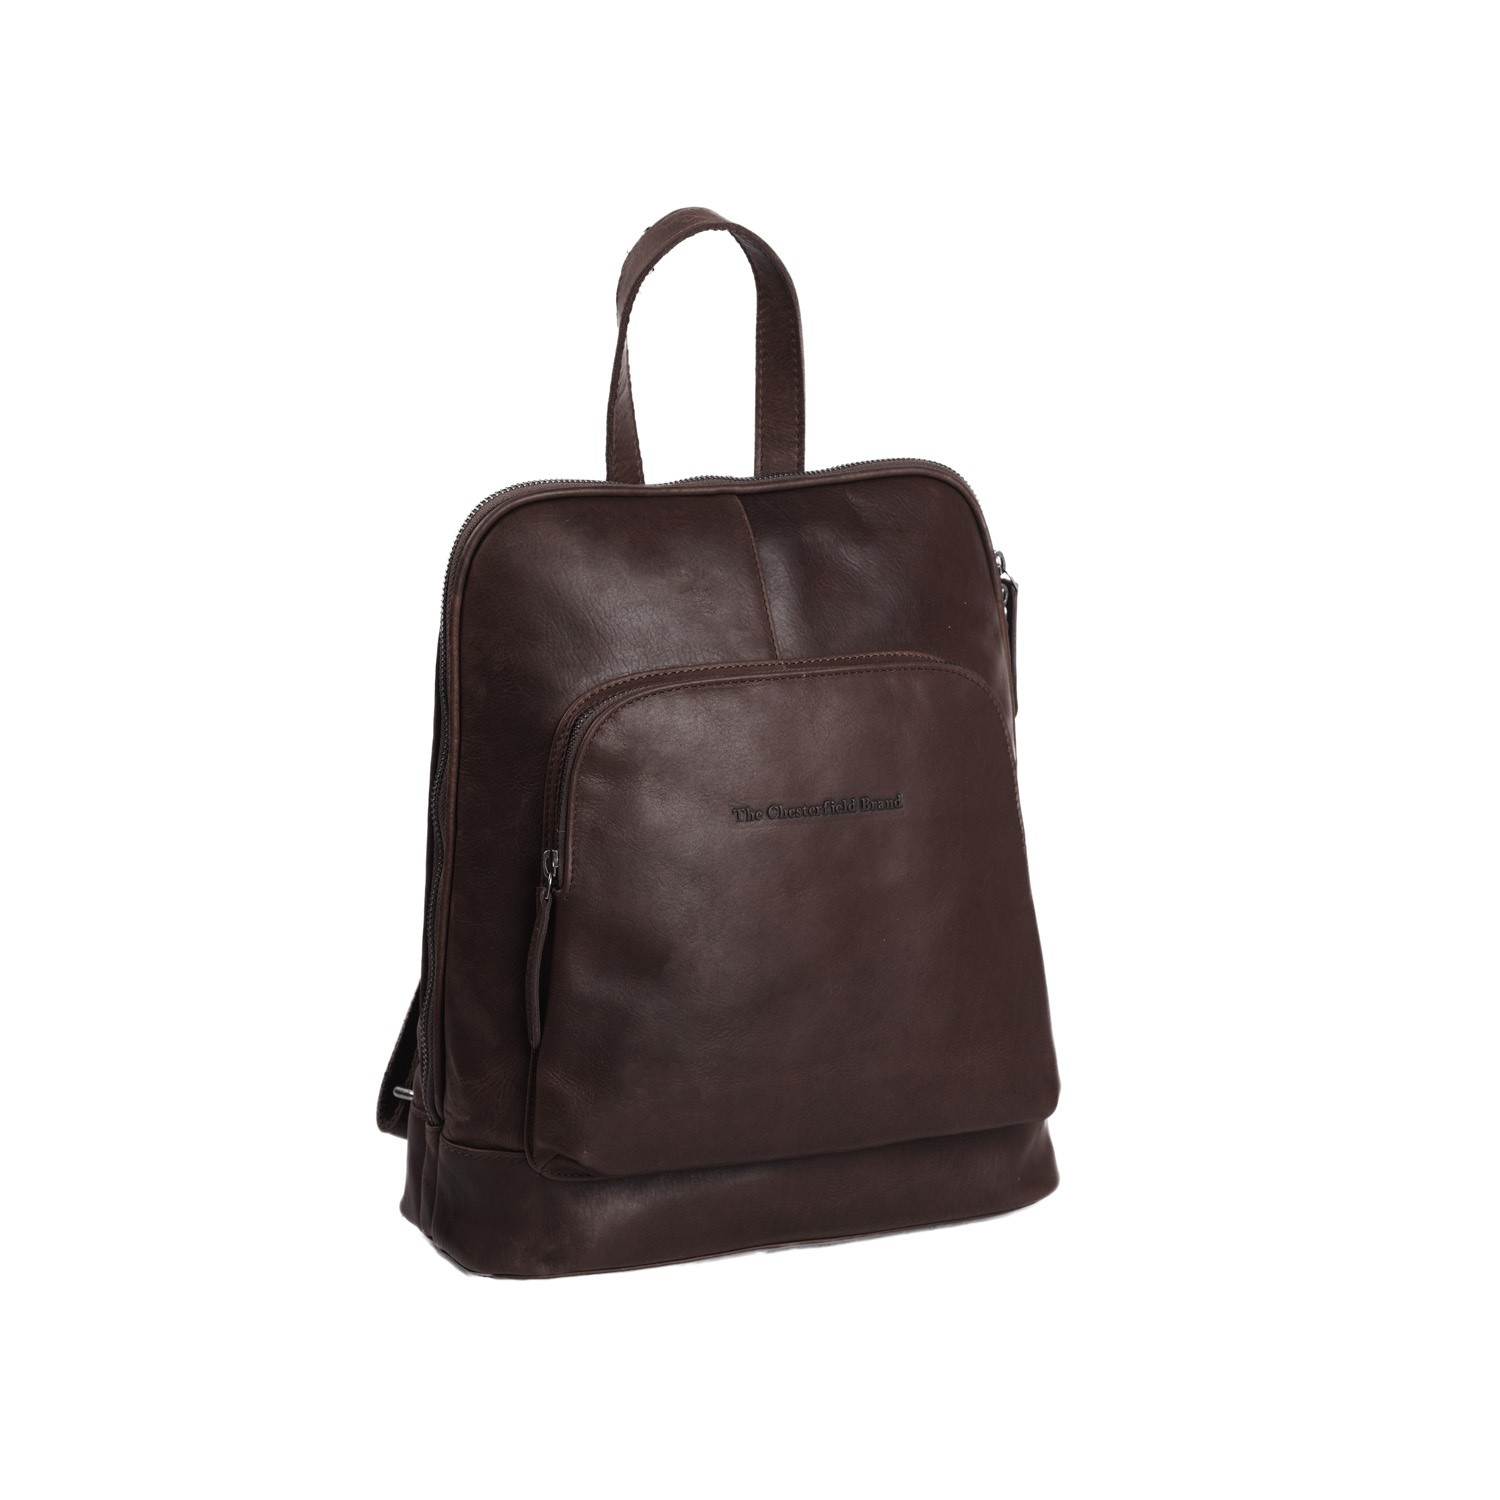 Image of Chesterfield Leather Backpack Brown Naomi